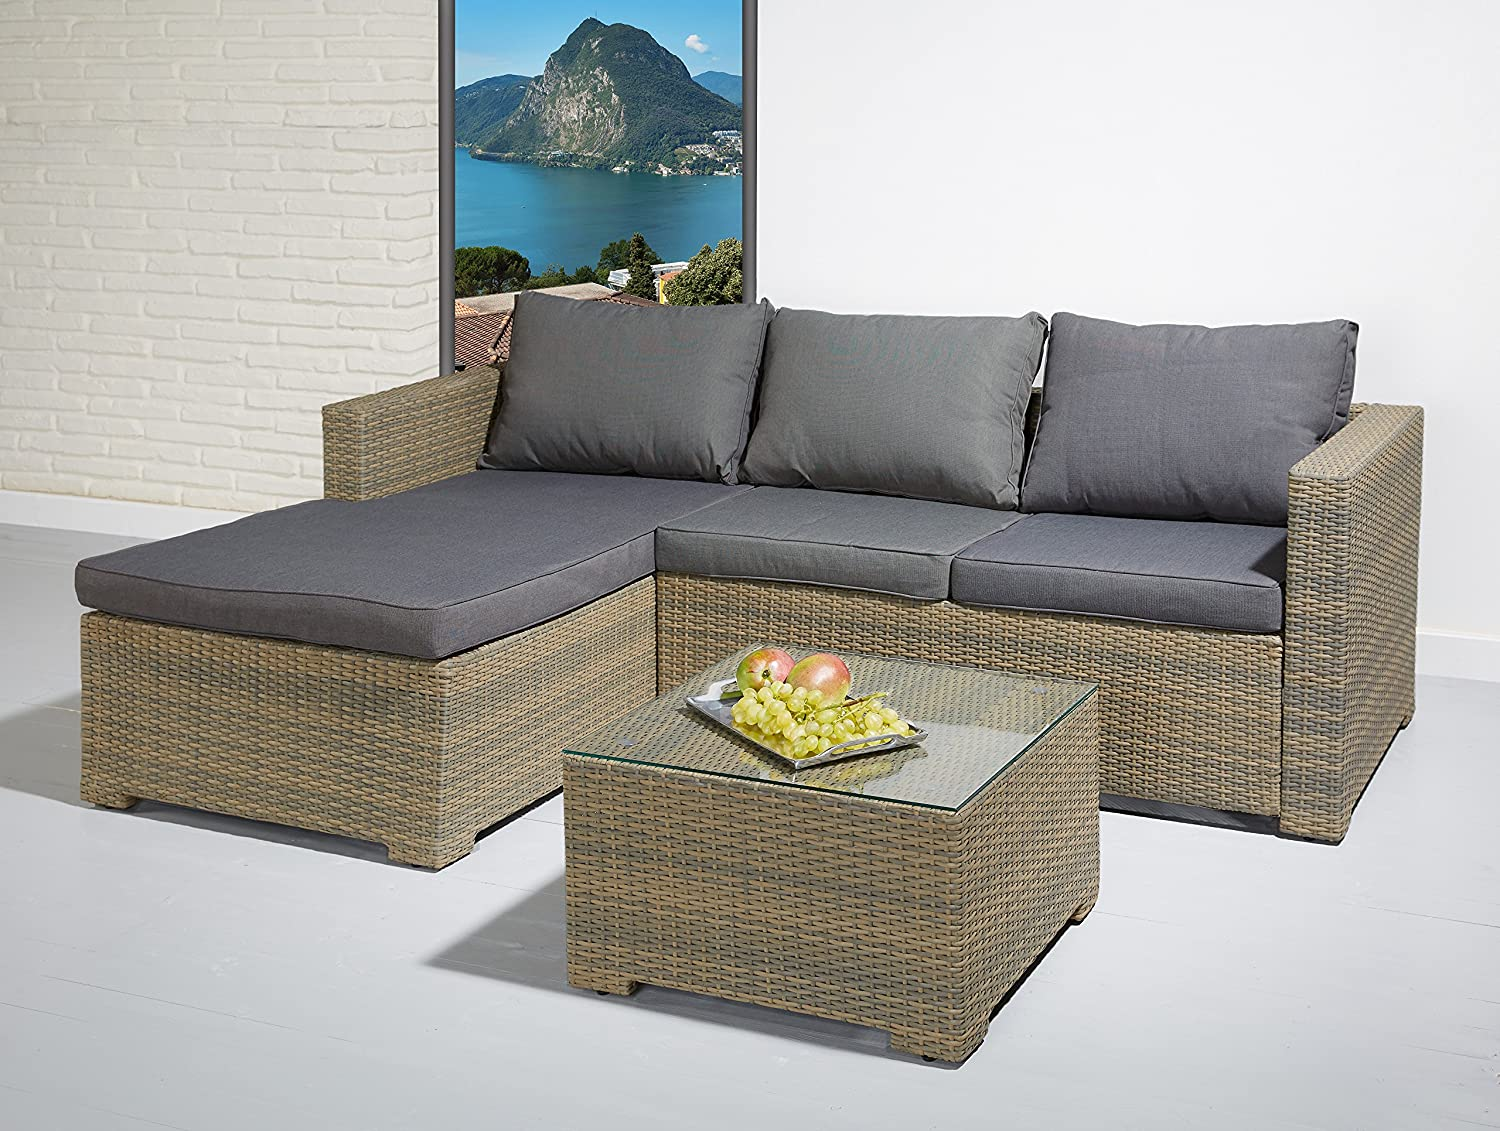 poly rattan essgruppe sitzgruppe braun grau lounge set. Black Bedroom Furniture Sets. Home Design Ideas